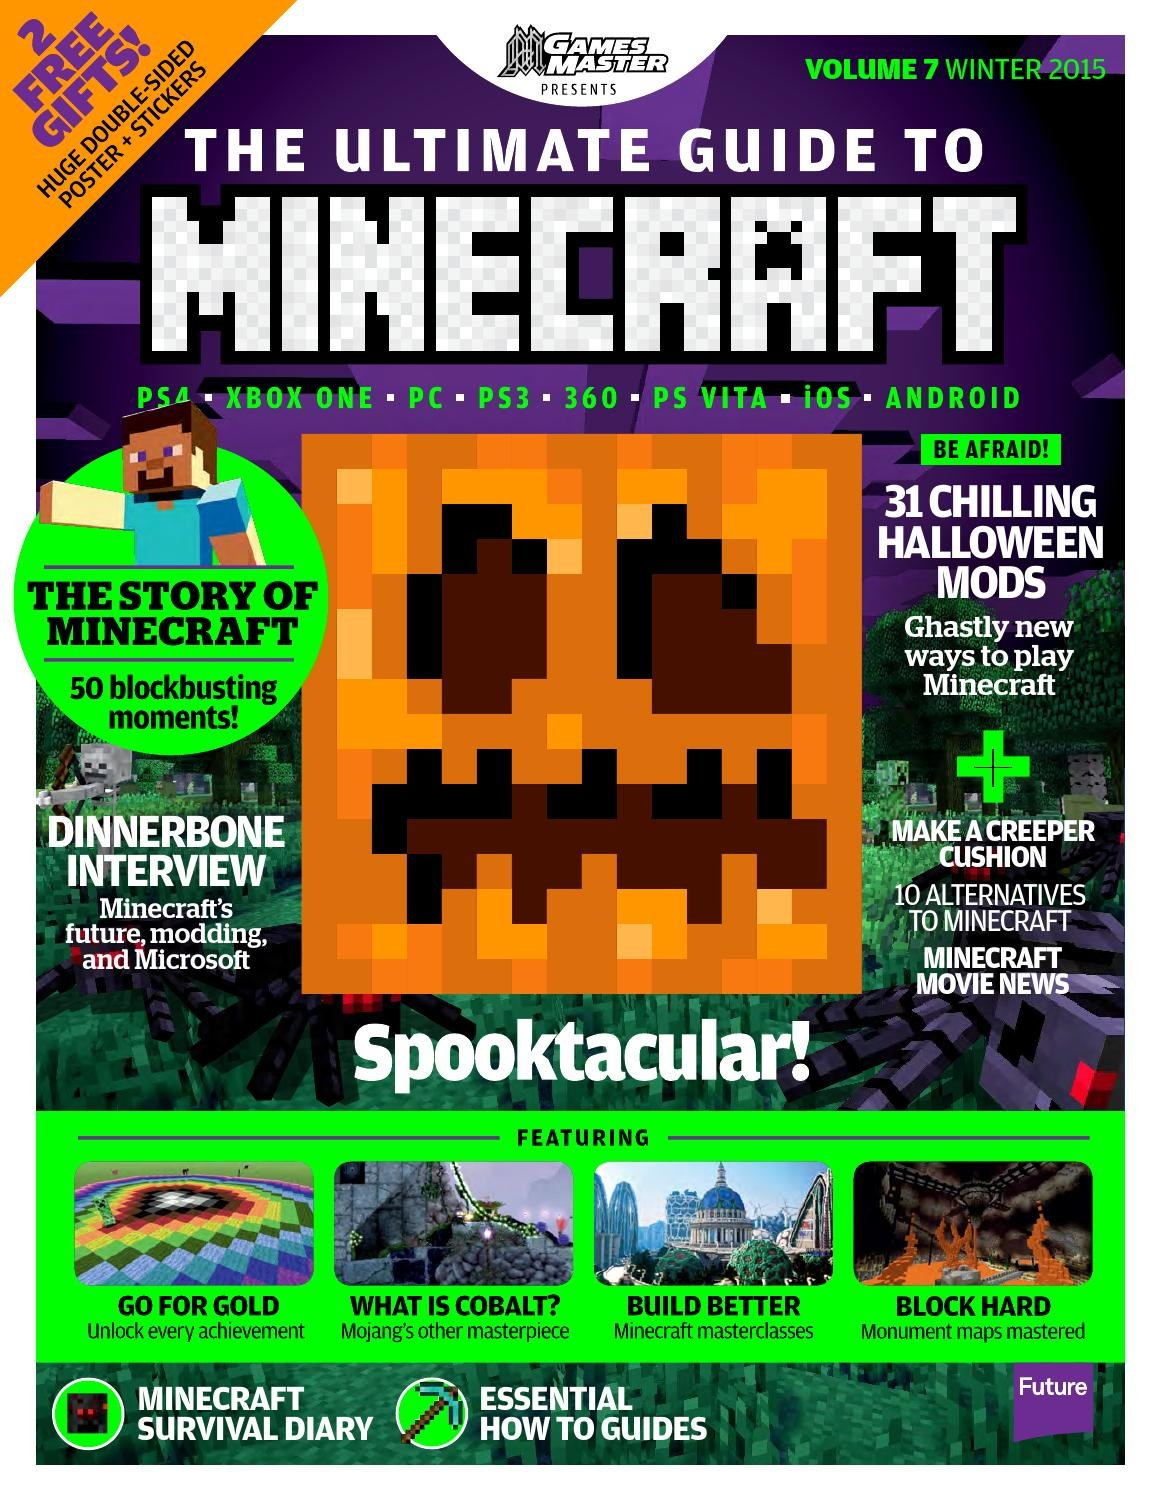 GamesMaster Presents: The Ultimate Guide to Minecraft Vol.07 (Winter 2015)